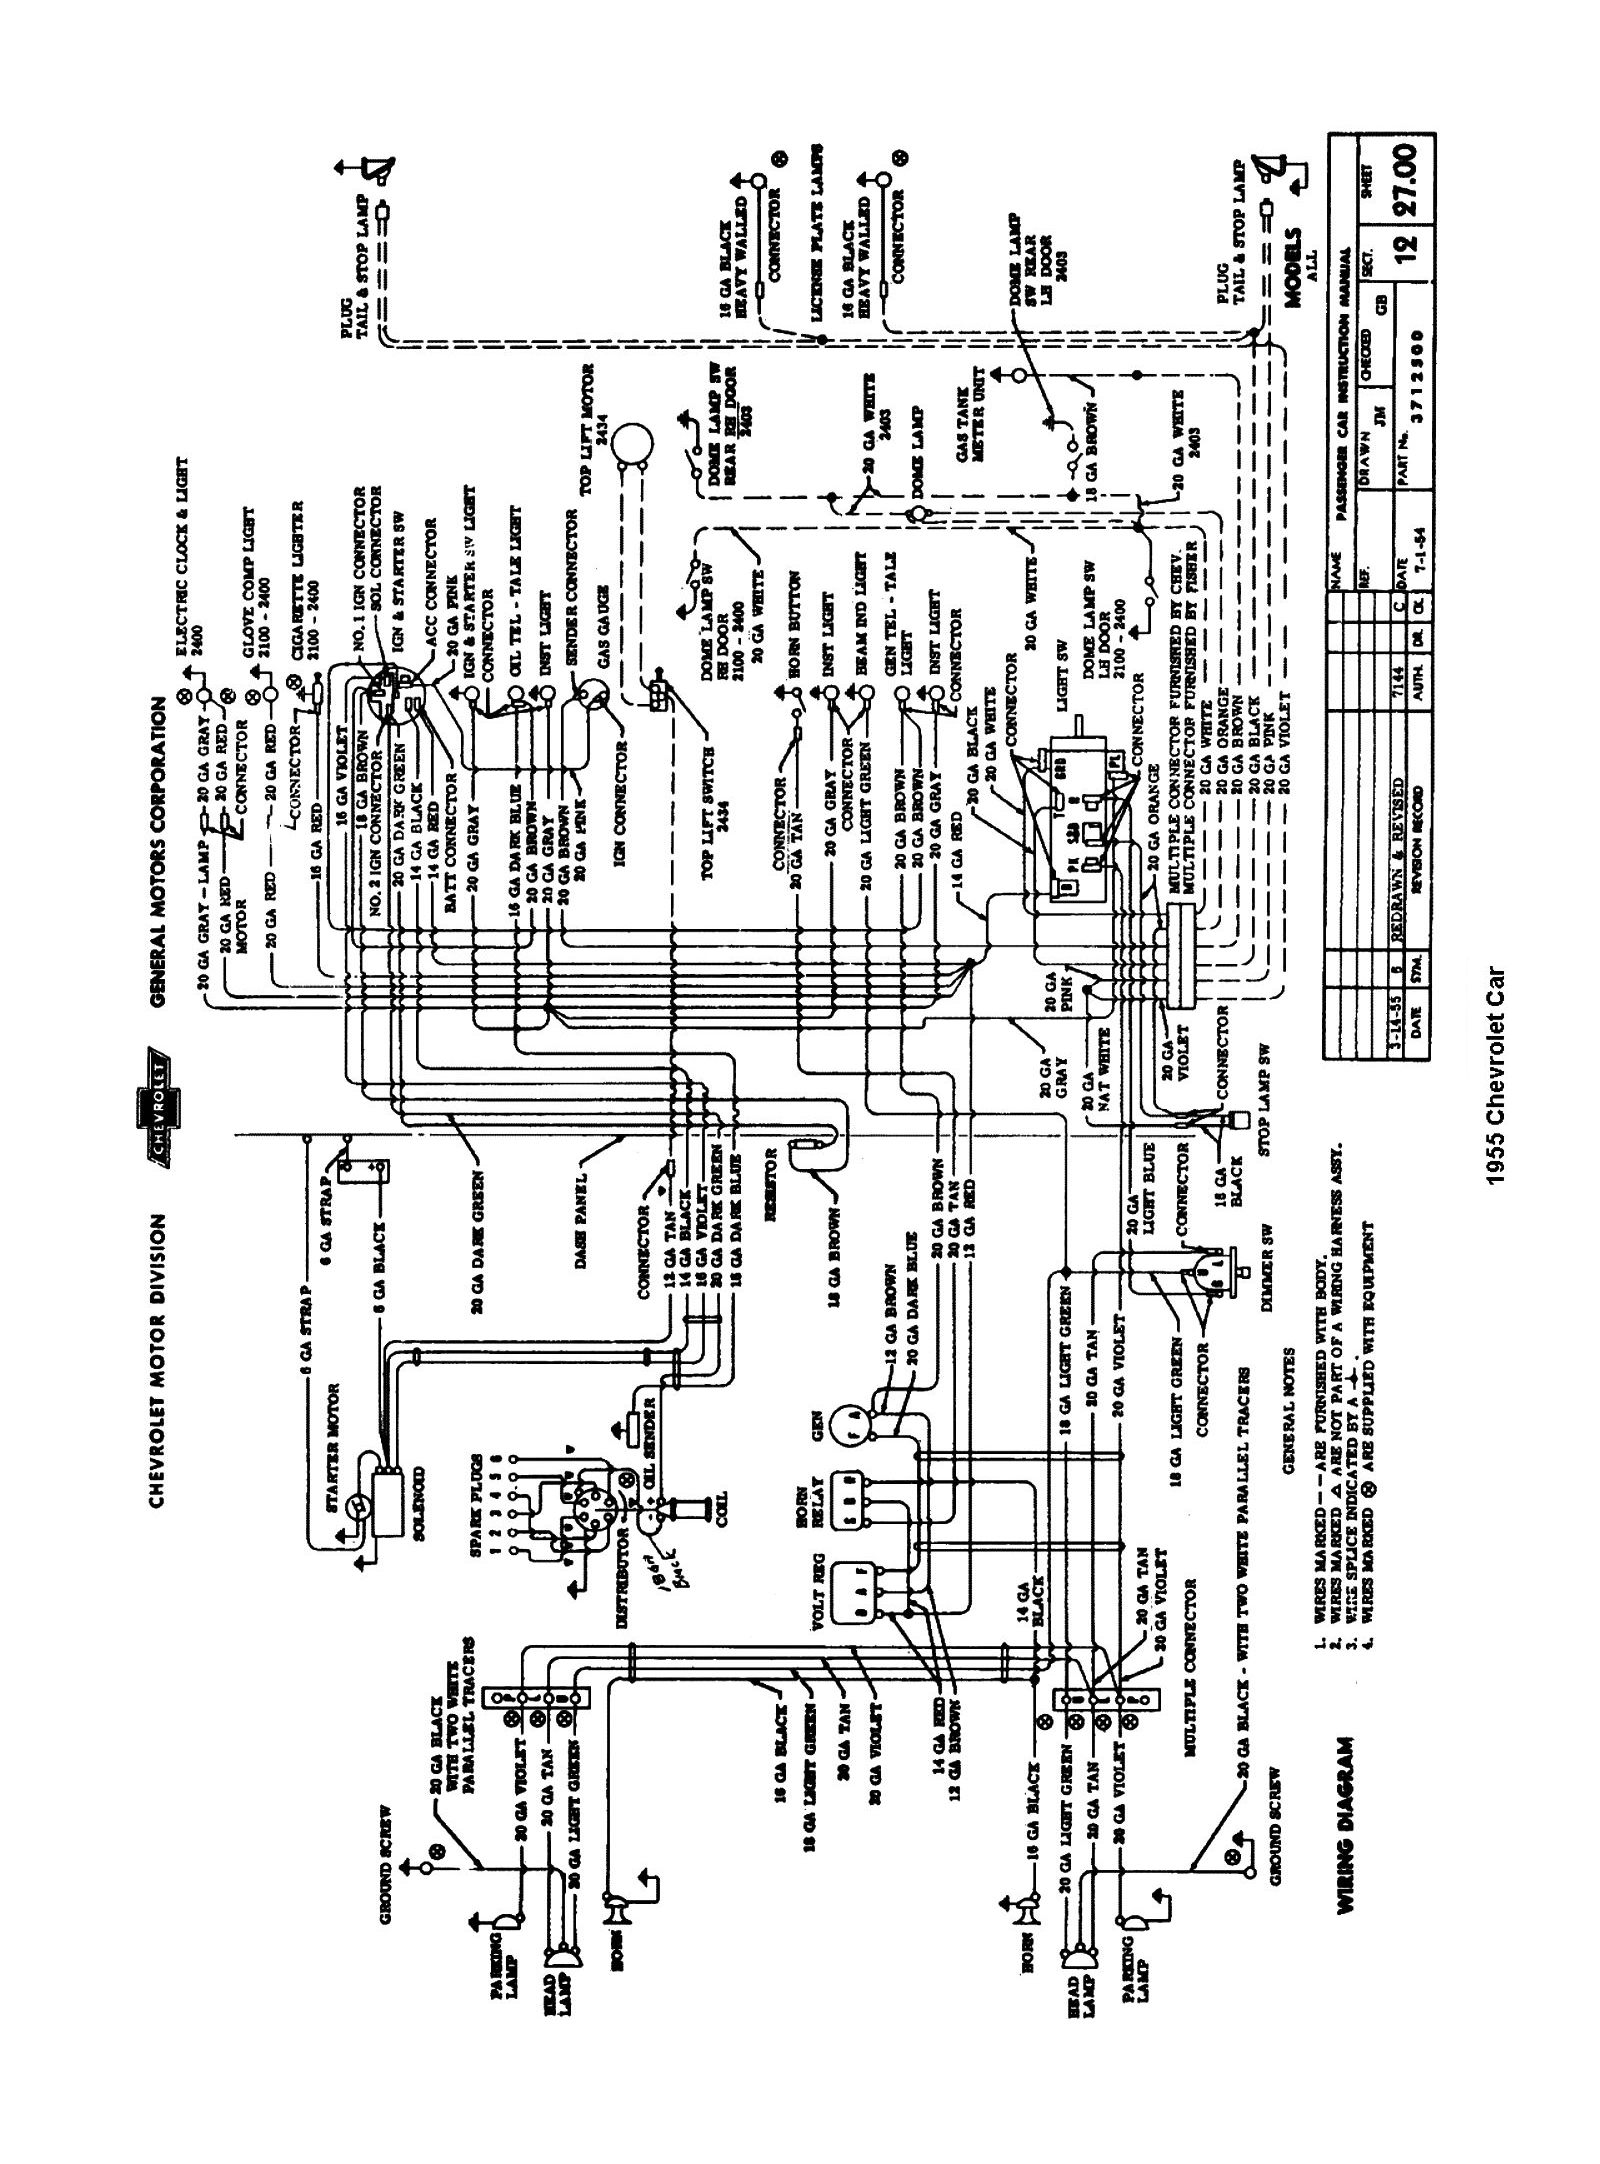 Dodge Truck Wiring Diagram Data Switched Neutral 59 Gmc Simple Wire Harness Chevy Diagrams Triumph